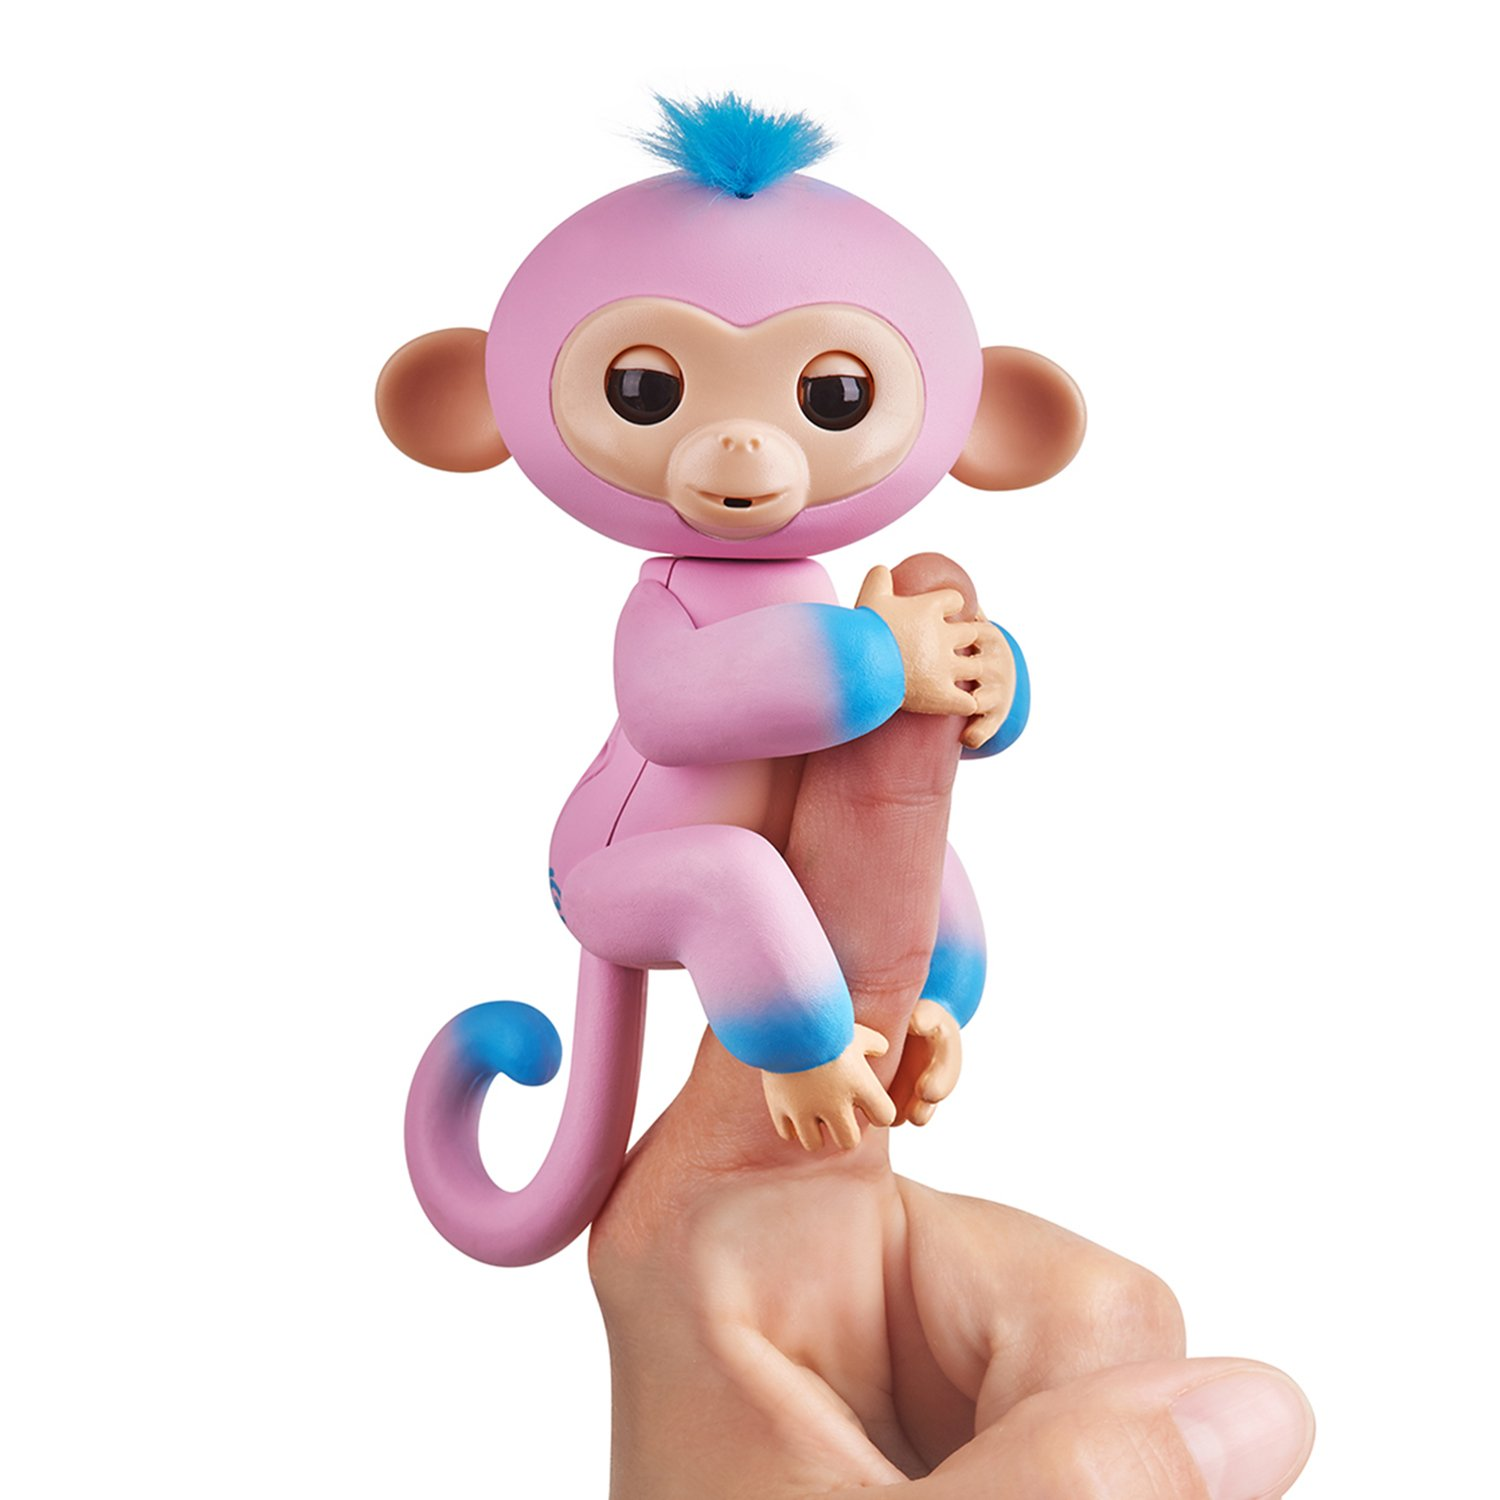 Fingerlings 2Tone Monkey - Eddie (Seafoam Green with Blue accents) - Interactive Baby Pet - By WowWee JAZWARES 3724